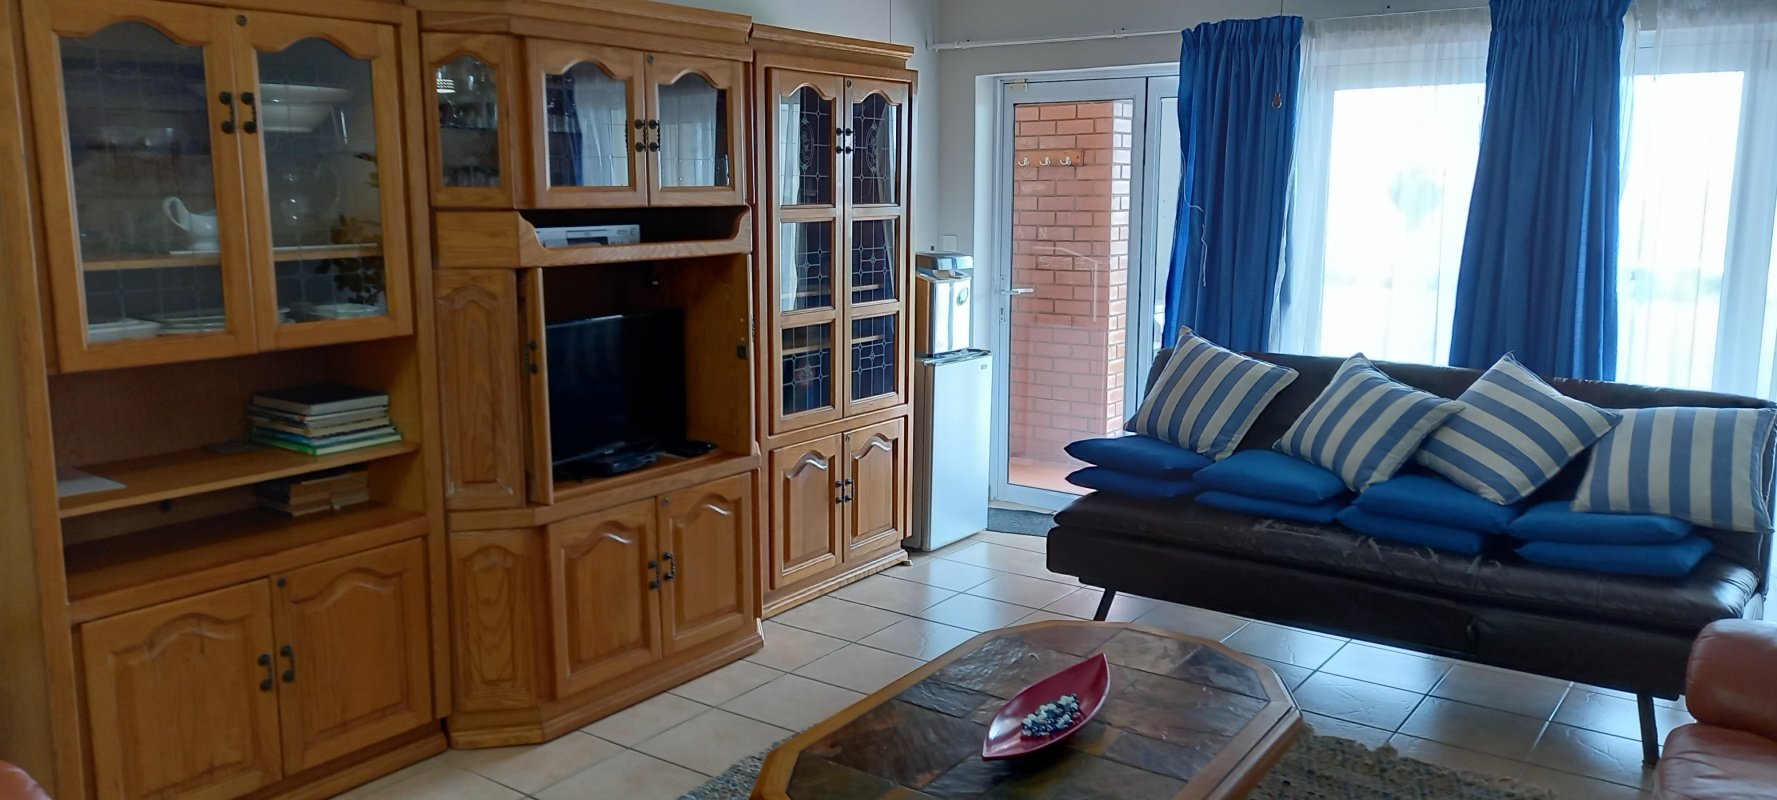 3 Bedroom   For Sale in Margate   1326370    Photo Number 4